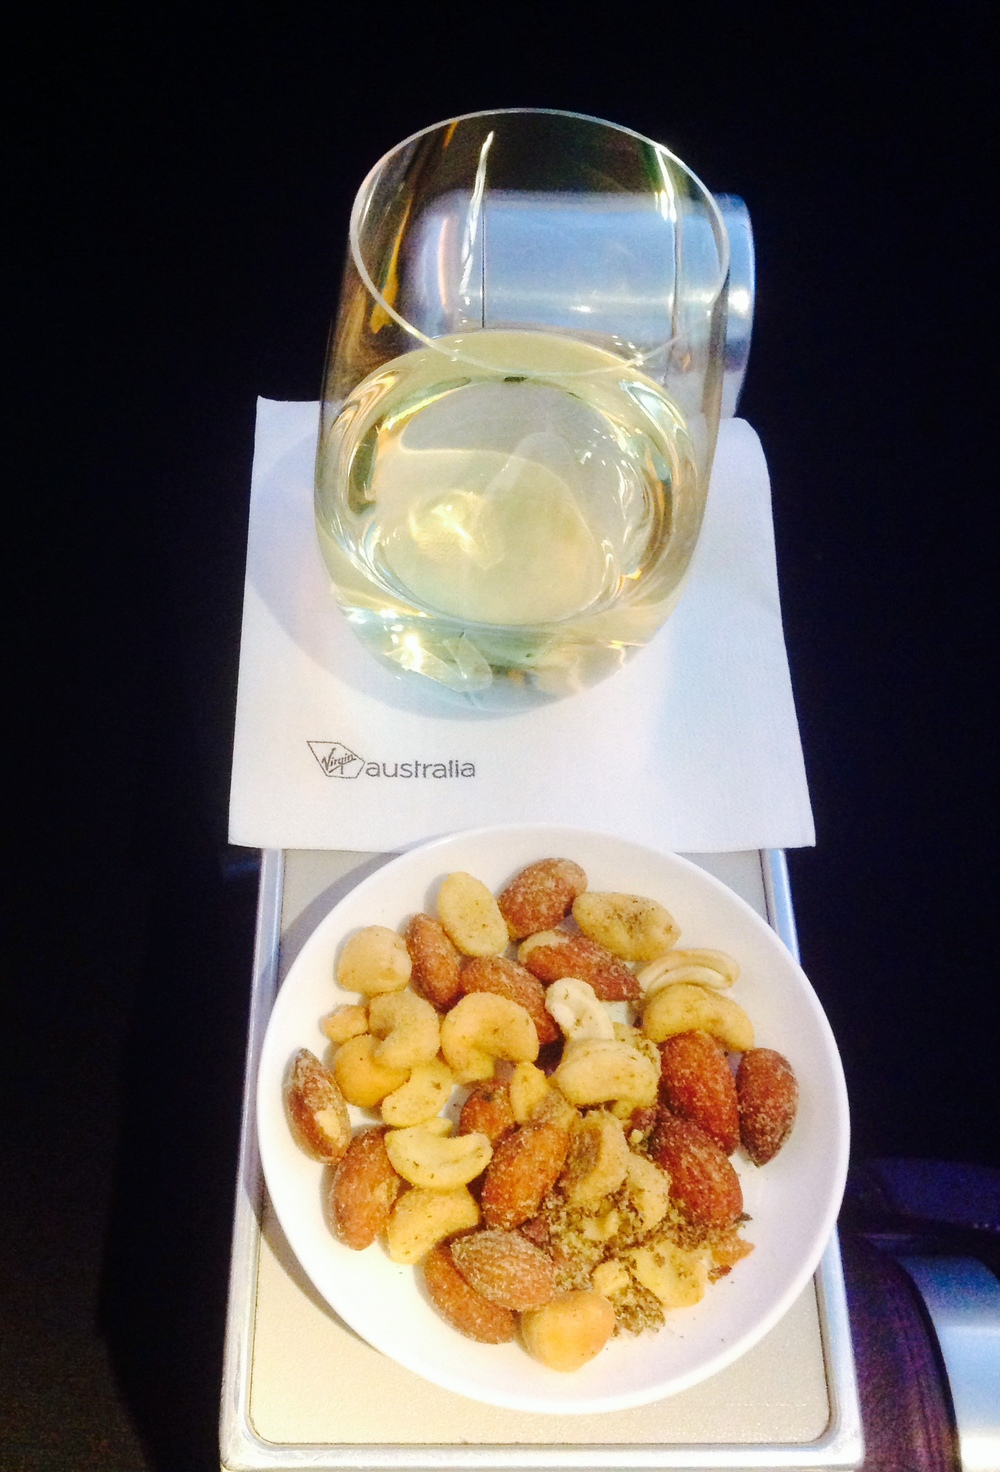 Sav Blanc and Warm Nuts upon boarding